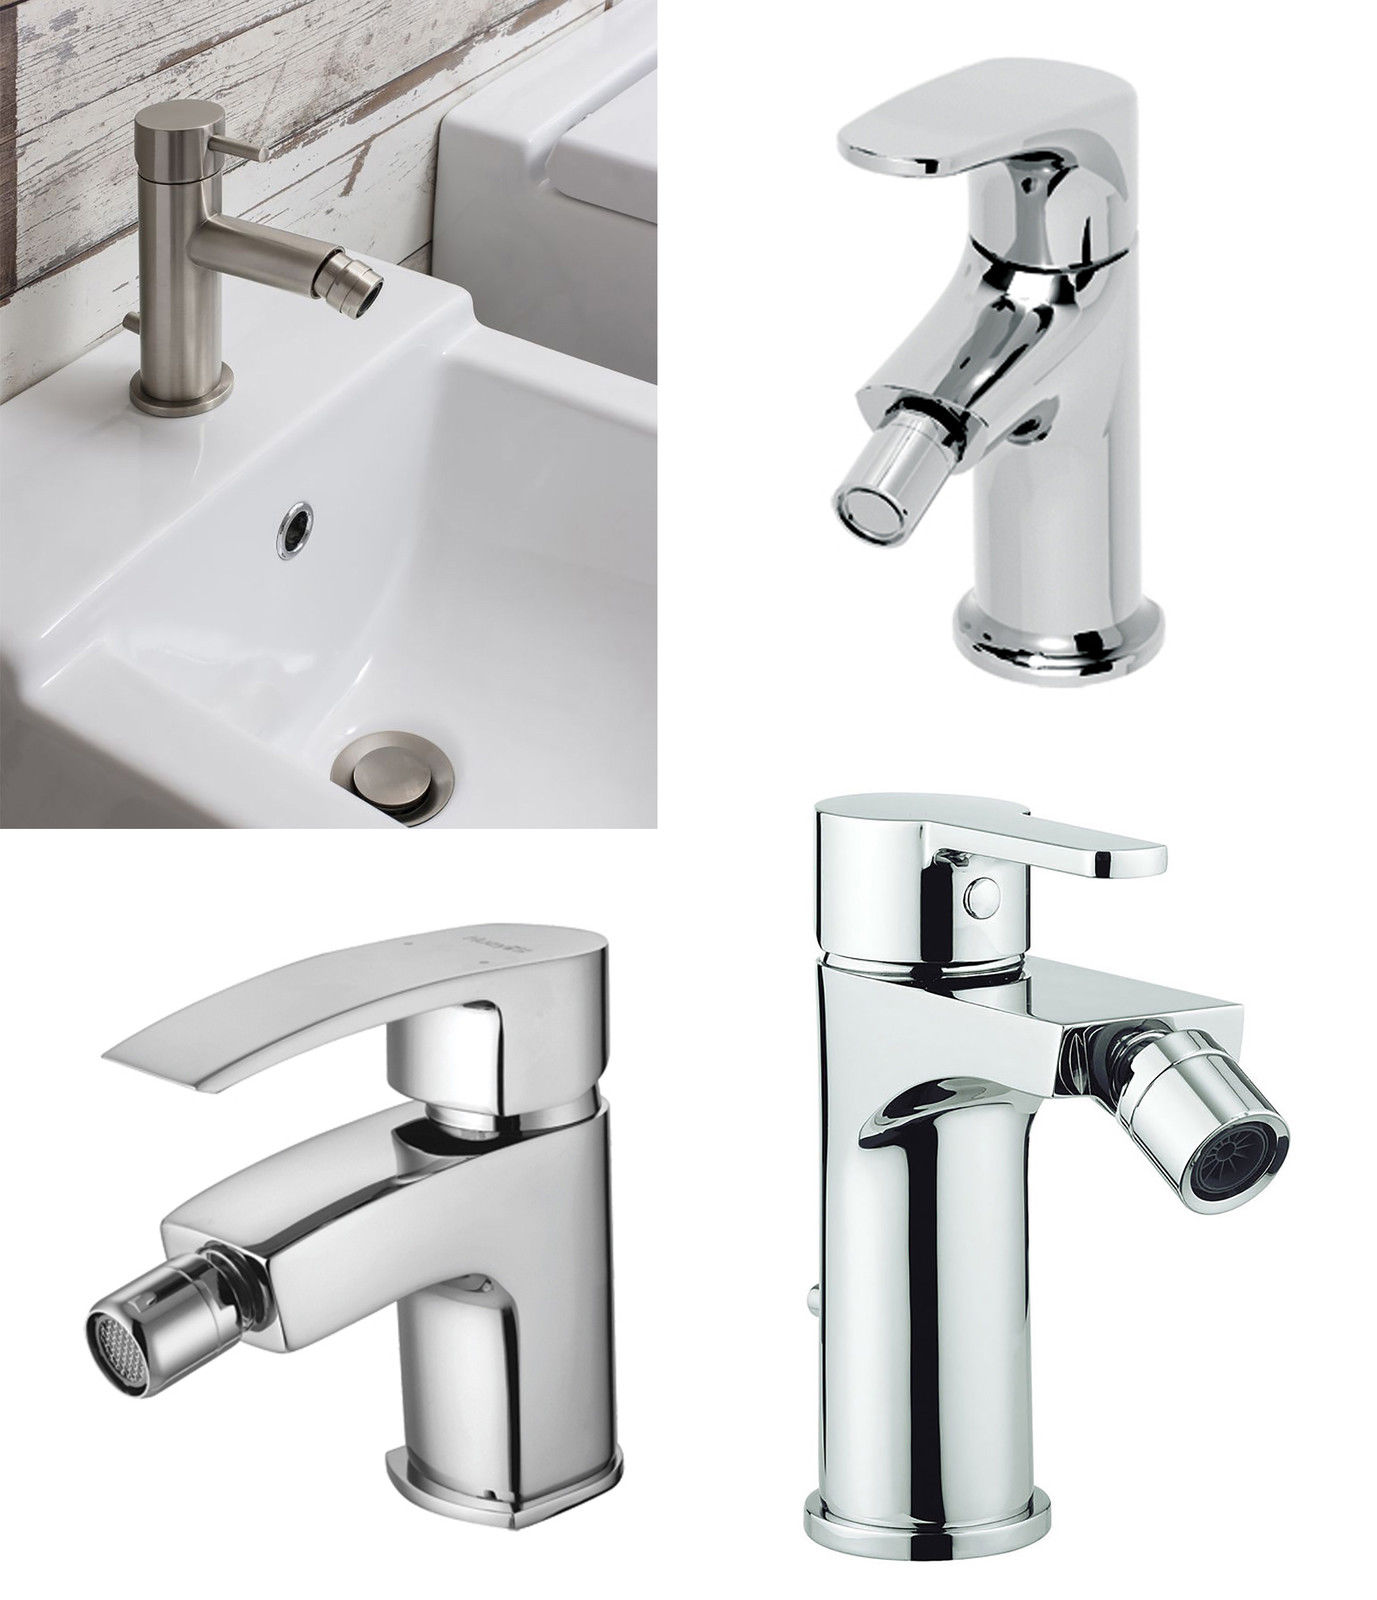 Bristan Rare + Crosswater Bidet Taps Clearance Bargain! Up To 90 ...